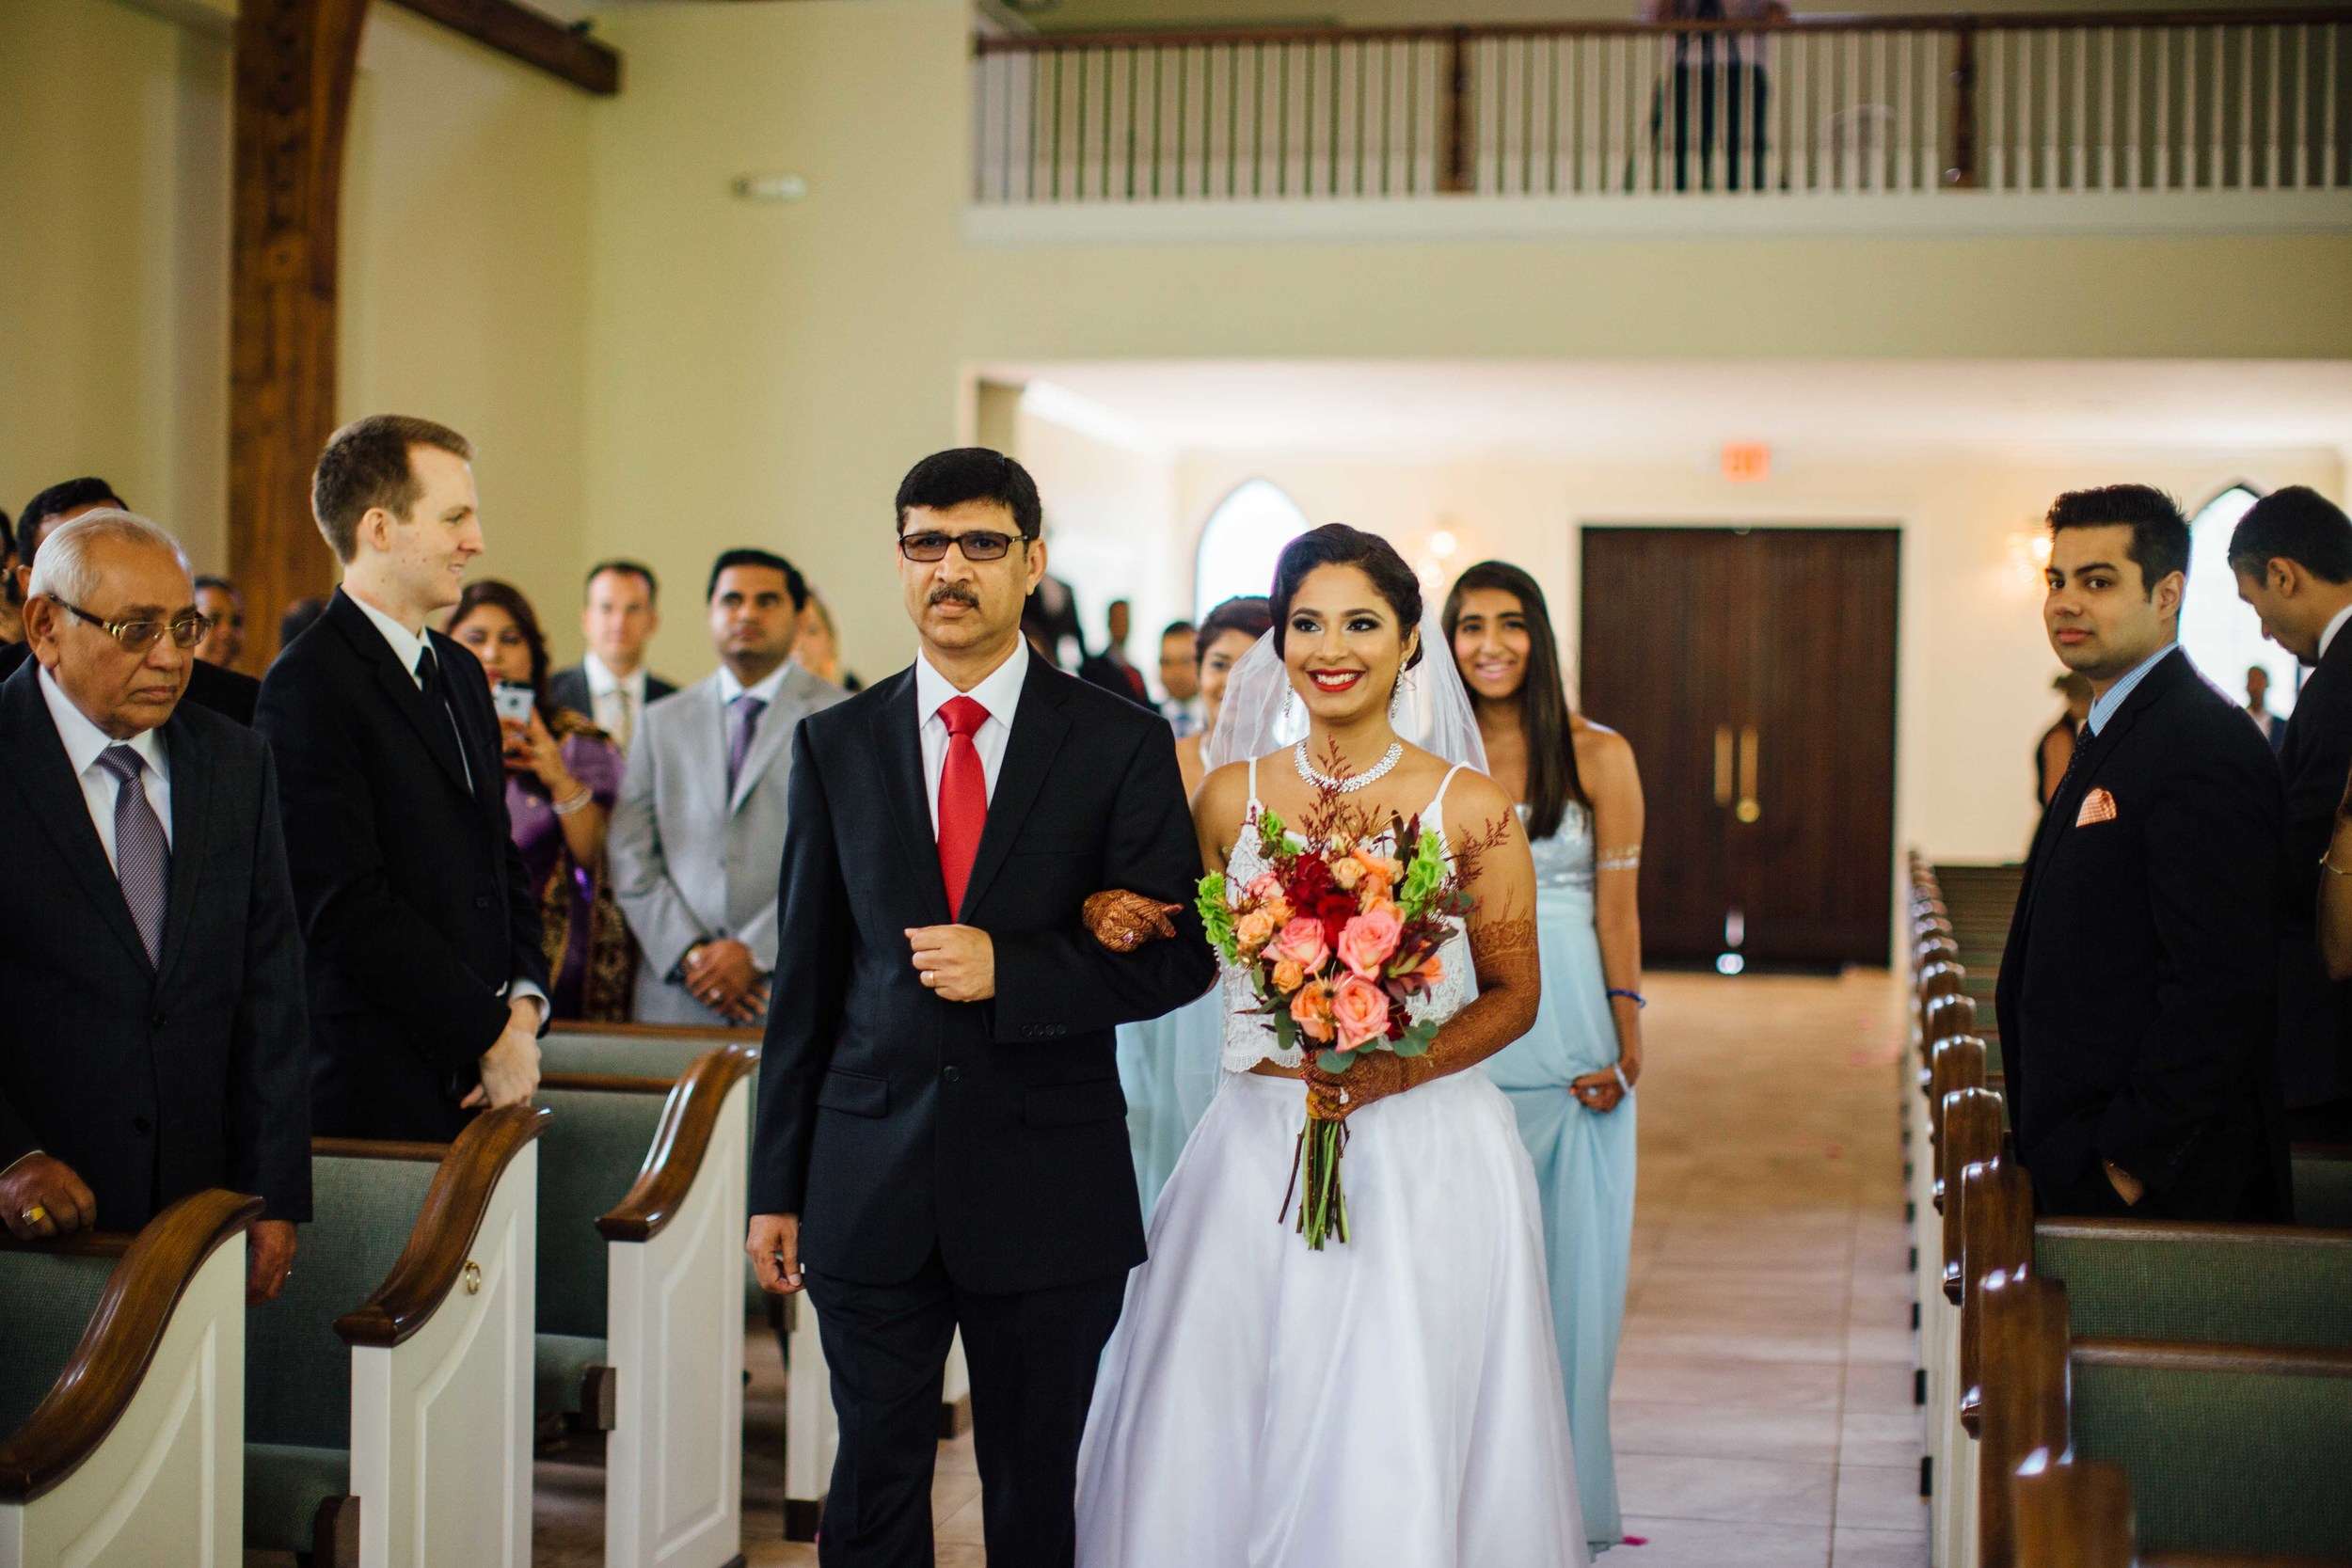 Kiyah C Photography Atlanta Wedding Photographer-21.jpg